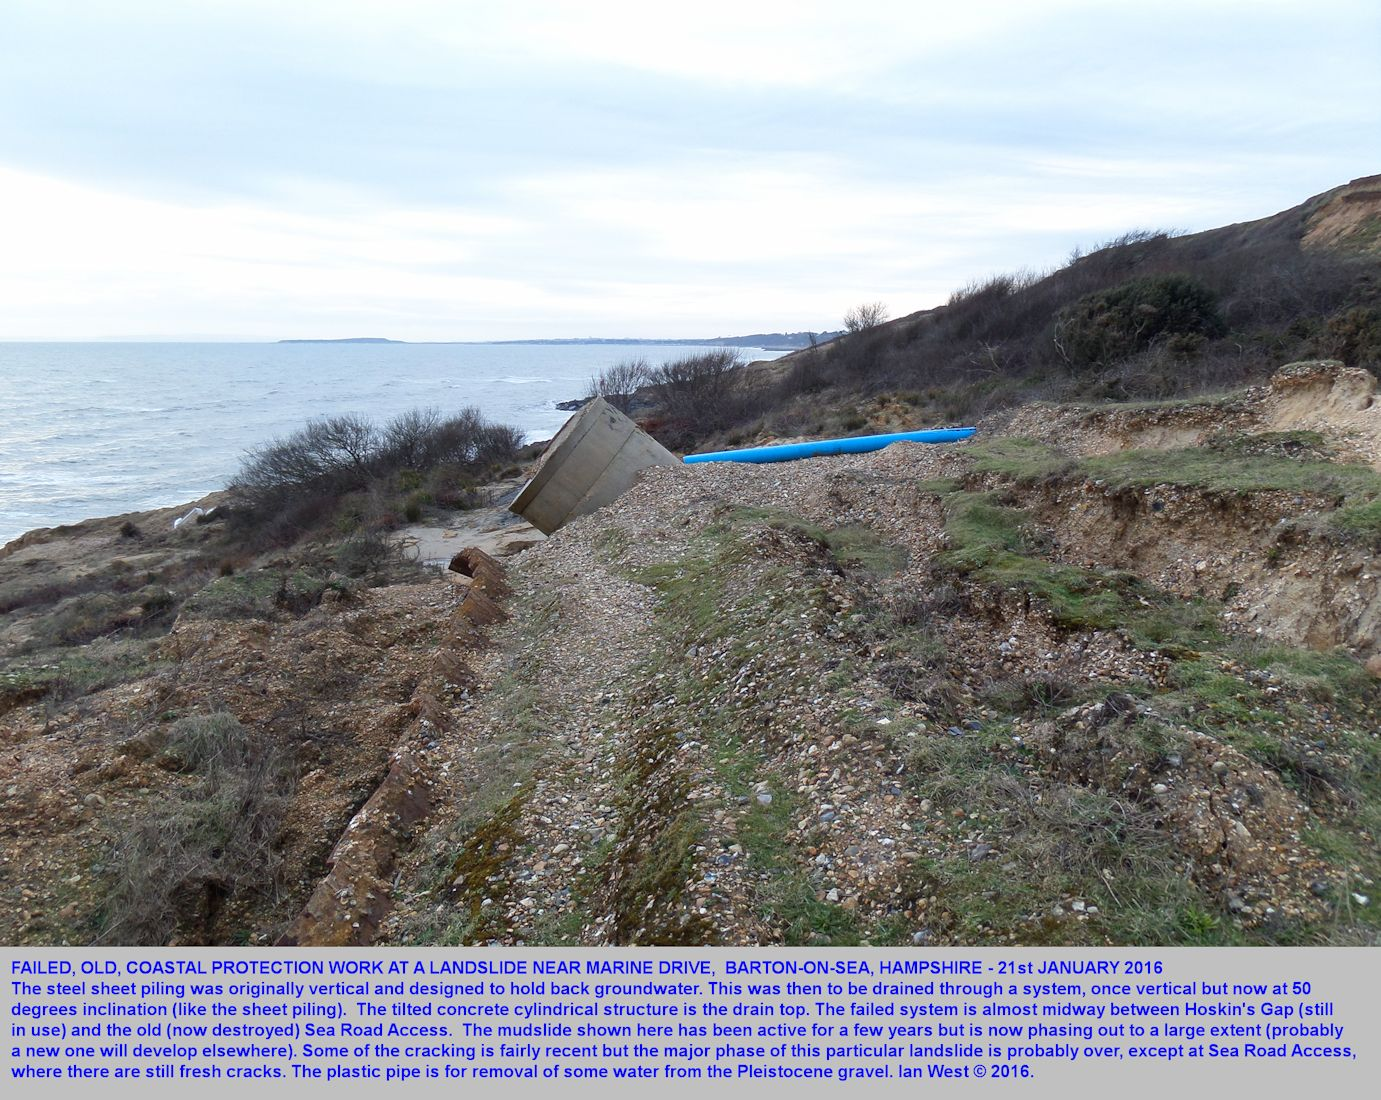 A view from the mid-cliff area showing the relics of major mudslide activity on the cliffs between Sea Road Access and Hoskin's Gap, Barton-on-Sea, as seen on 21st January 2016